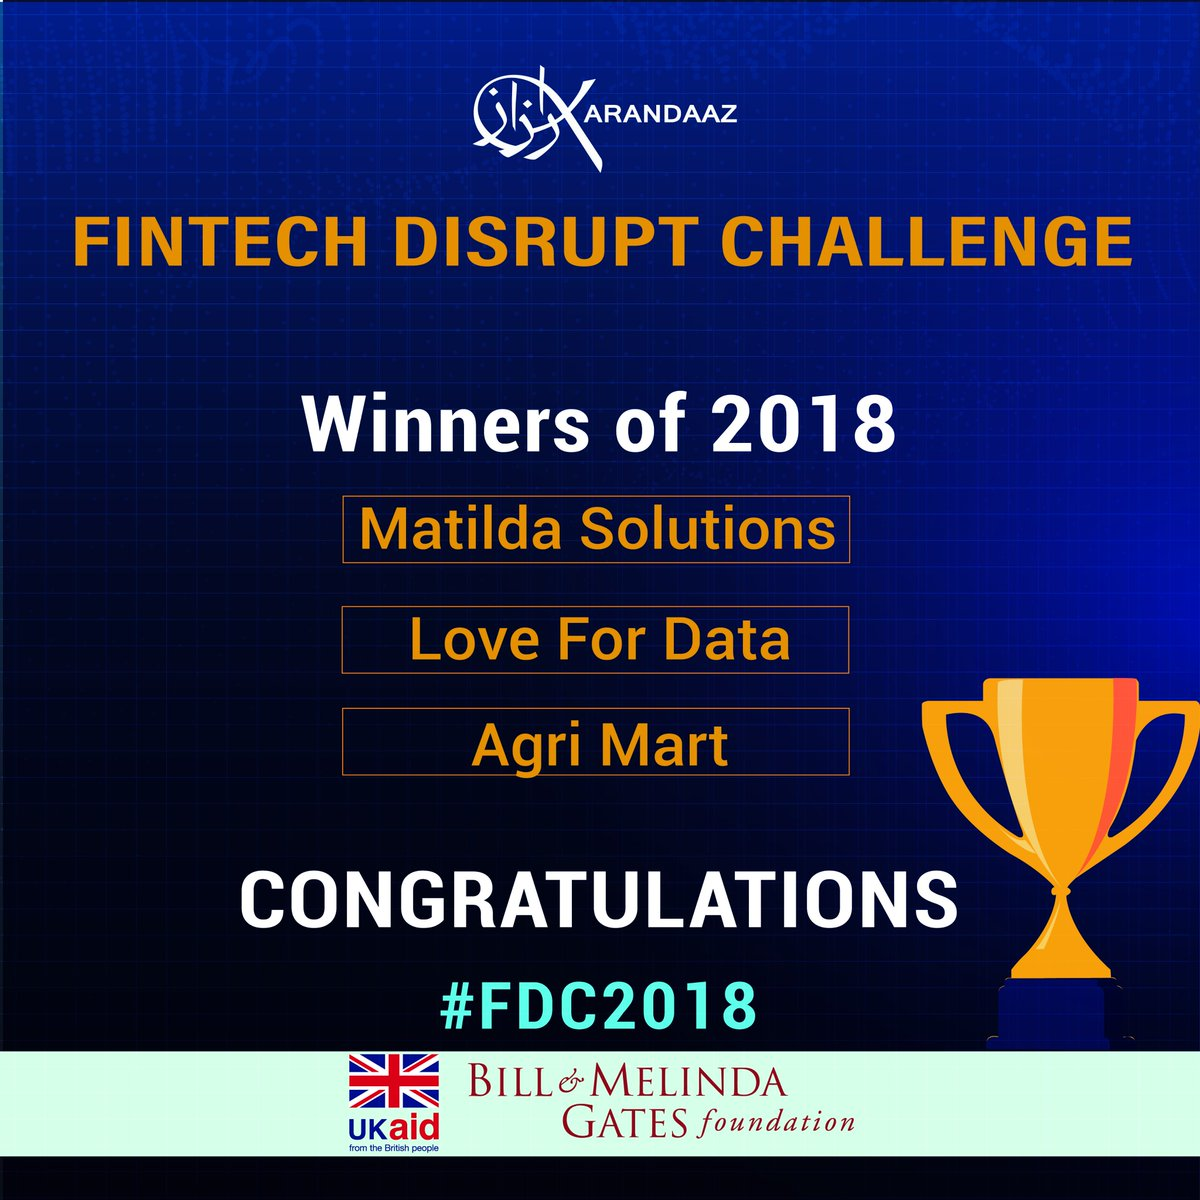 test Twitter Media - Karandaaz is proud of the impressive #FDC2018 finalists. They are examples of the entrepreneurial spirit that will propel country's competitiveness in the services markets. Congratulations to the 3 winners, we look forward to working closely to deliver innovative #DFS in Pakistan https://t.co/q0WsxvxLHA